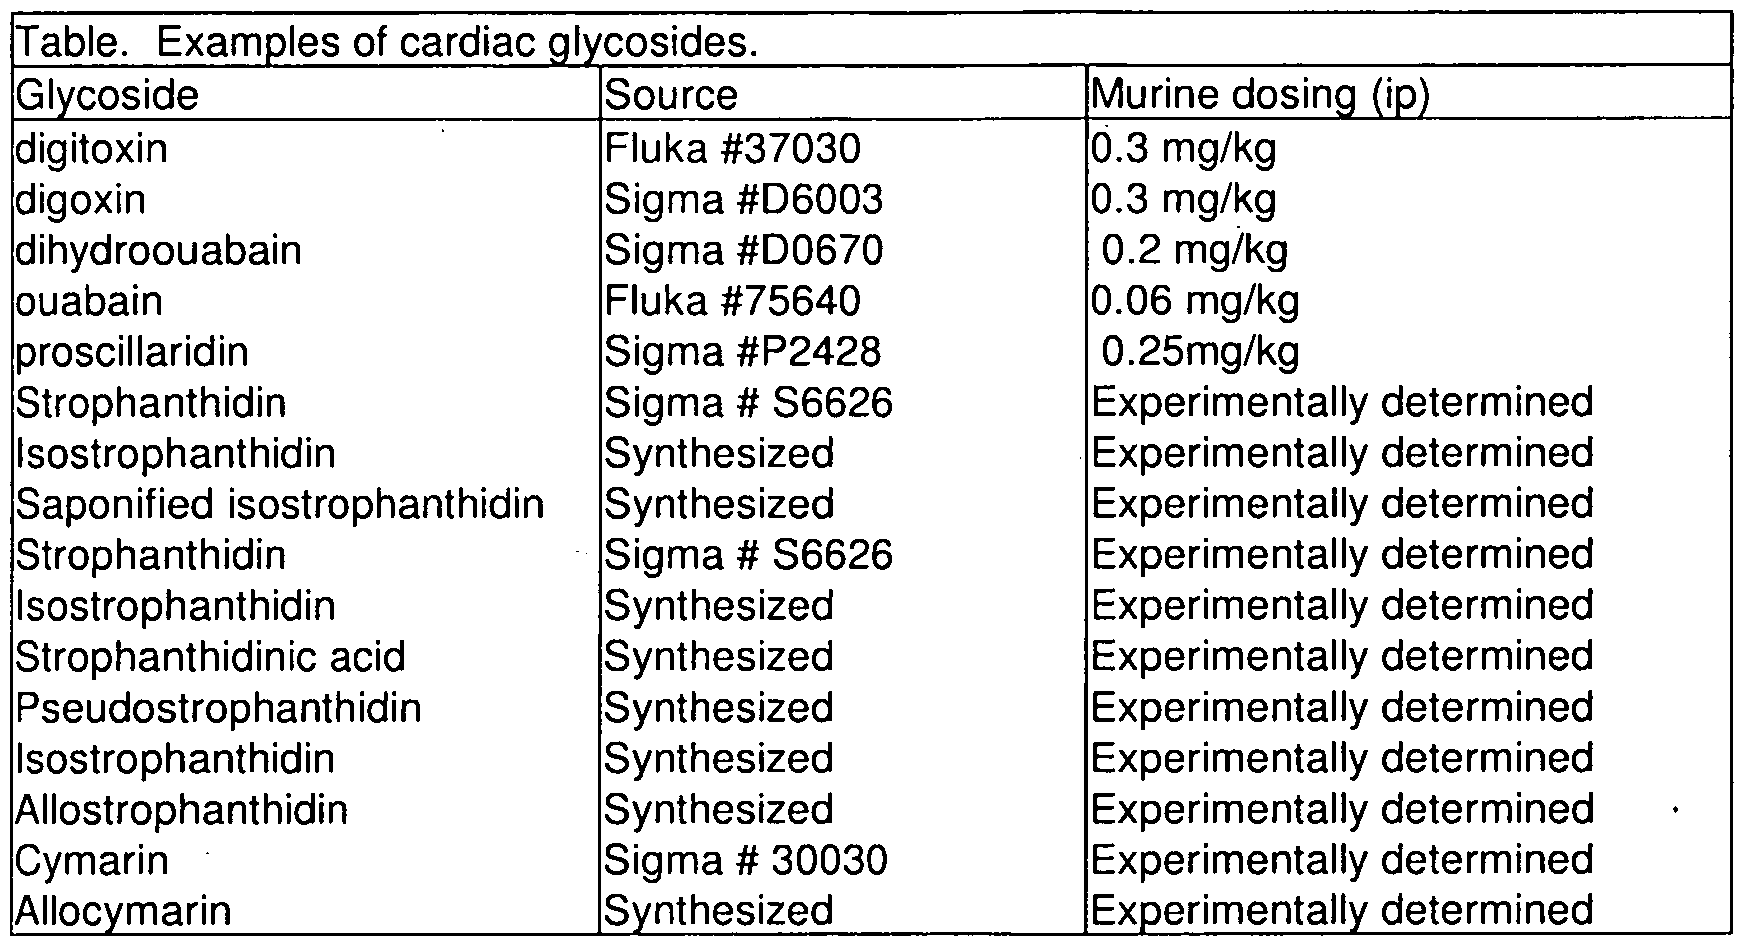 Cardiac glycosides. Preparations containing glycosides. Briefly about the important